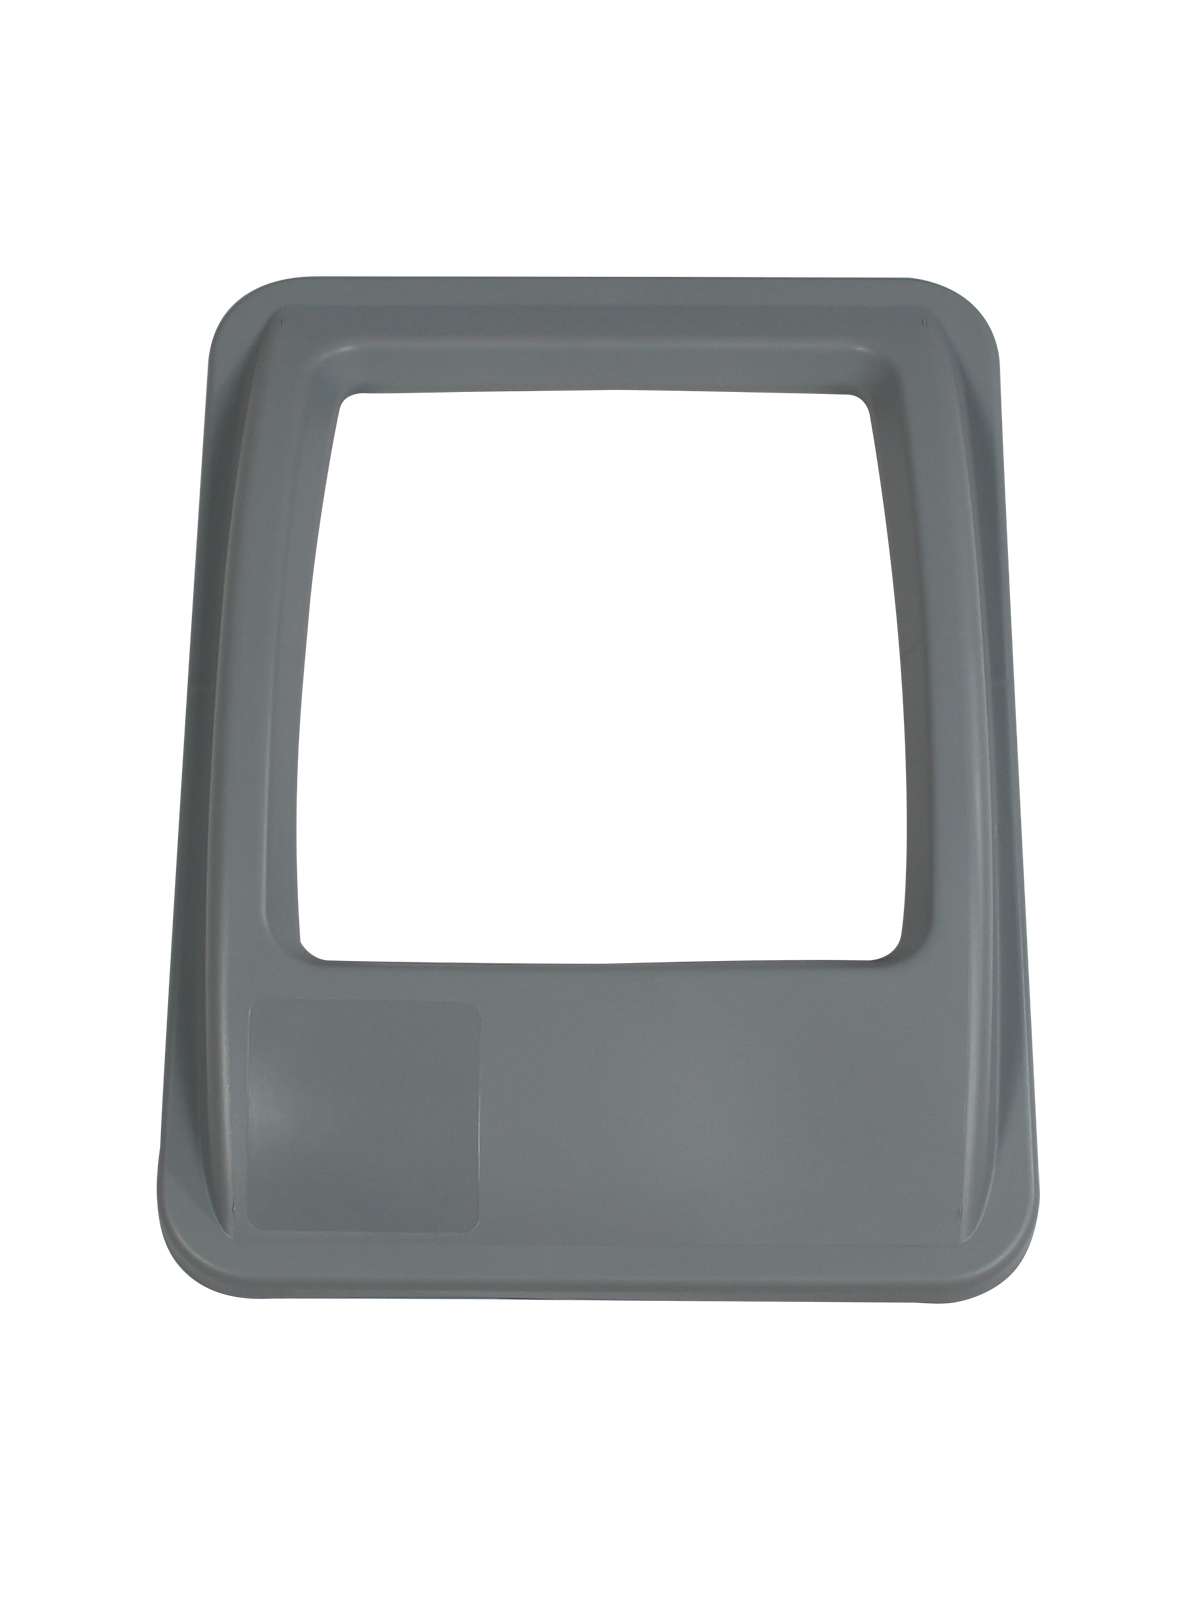 WASTE WATCHER® XL - LID - FULL OPENING - EXECUTIVE GREY title=